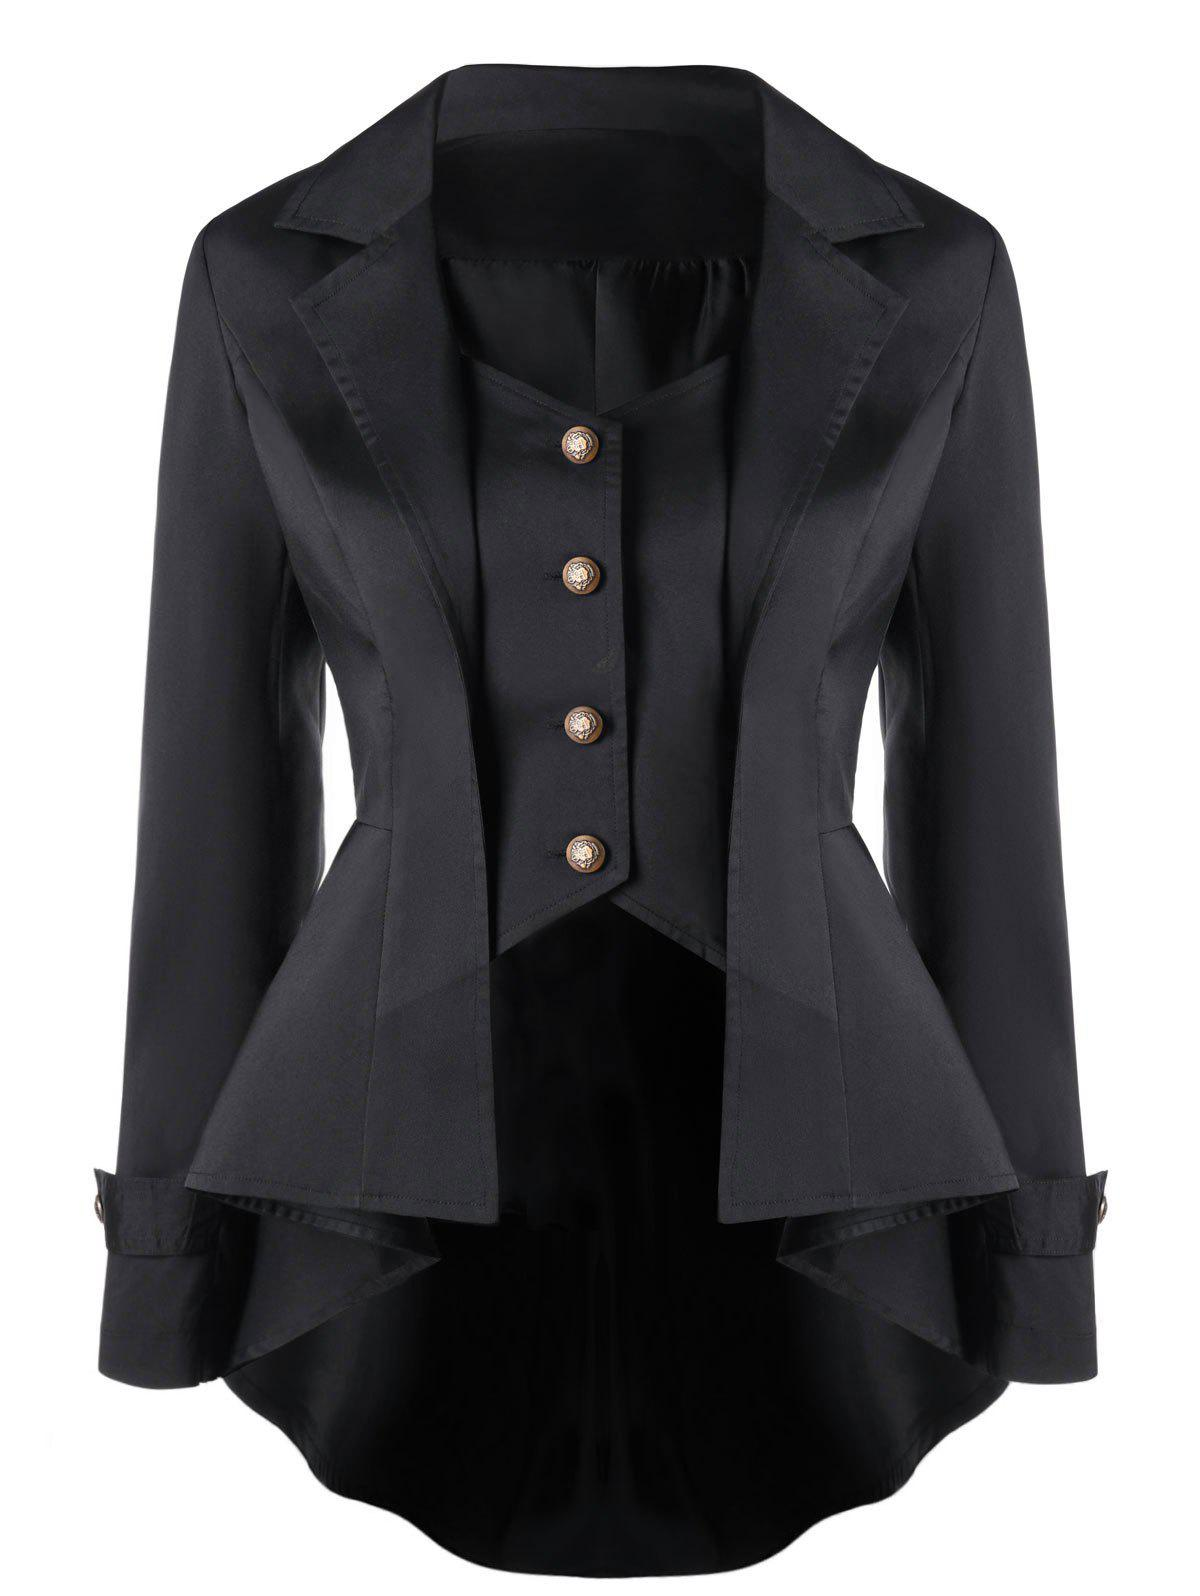 Notched Collar Button Up High Low CoatWOMEN<br><br>Size: XL; Color: BLACK; Clothes Type: Trench; Material: Polyester; Type: Slim; Shirt Length: Regular; Sleeve Length: Full; Collar: Notched Collar; Pattern Type: Solid; Embellishment: Button; Style: Gothic; Season: Fall,Spring; Weight: 0.3200kg; Package Contents: 1 x Coat;